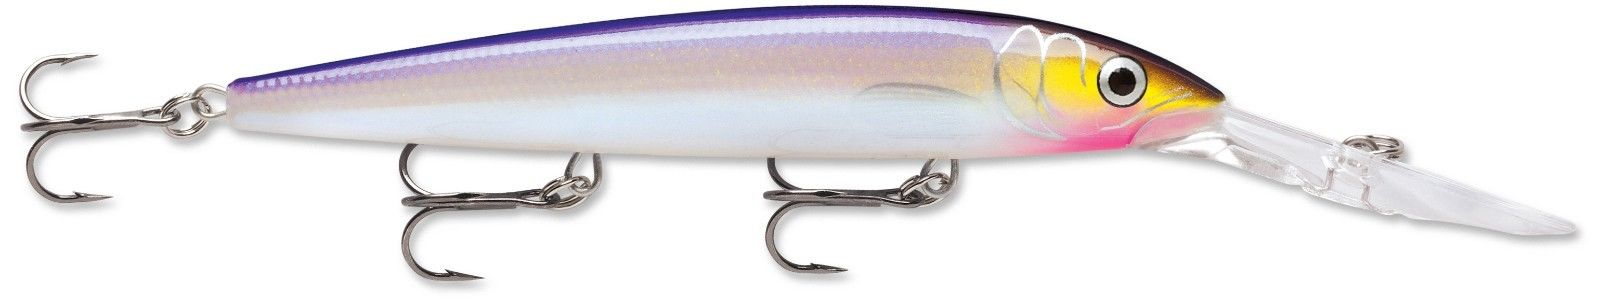 Rapala Down Deep Husky Jerk 12 Deep Diving Jerkbait